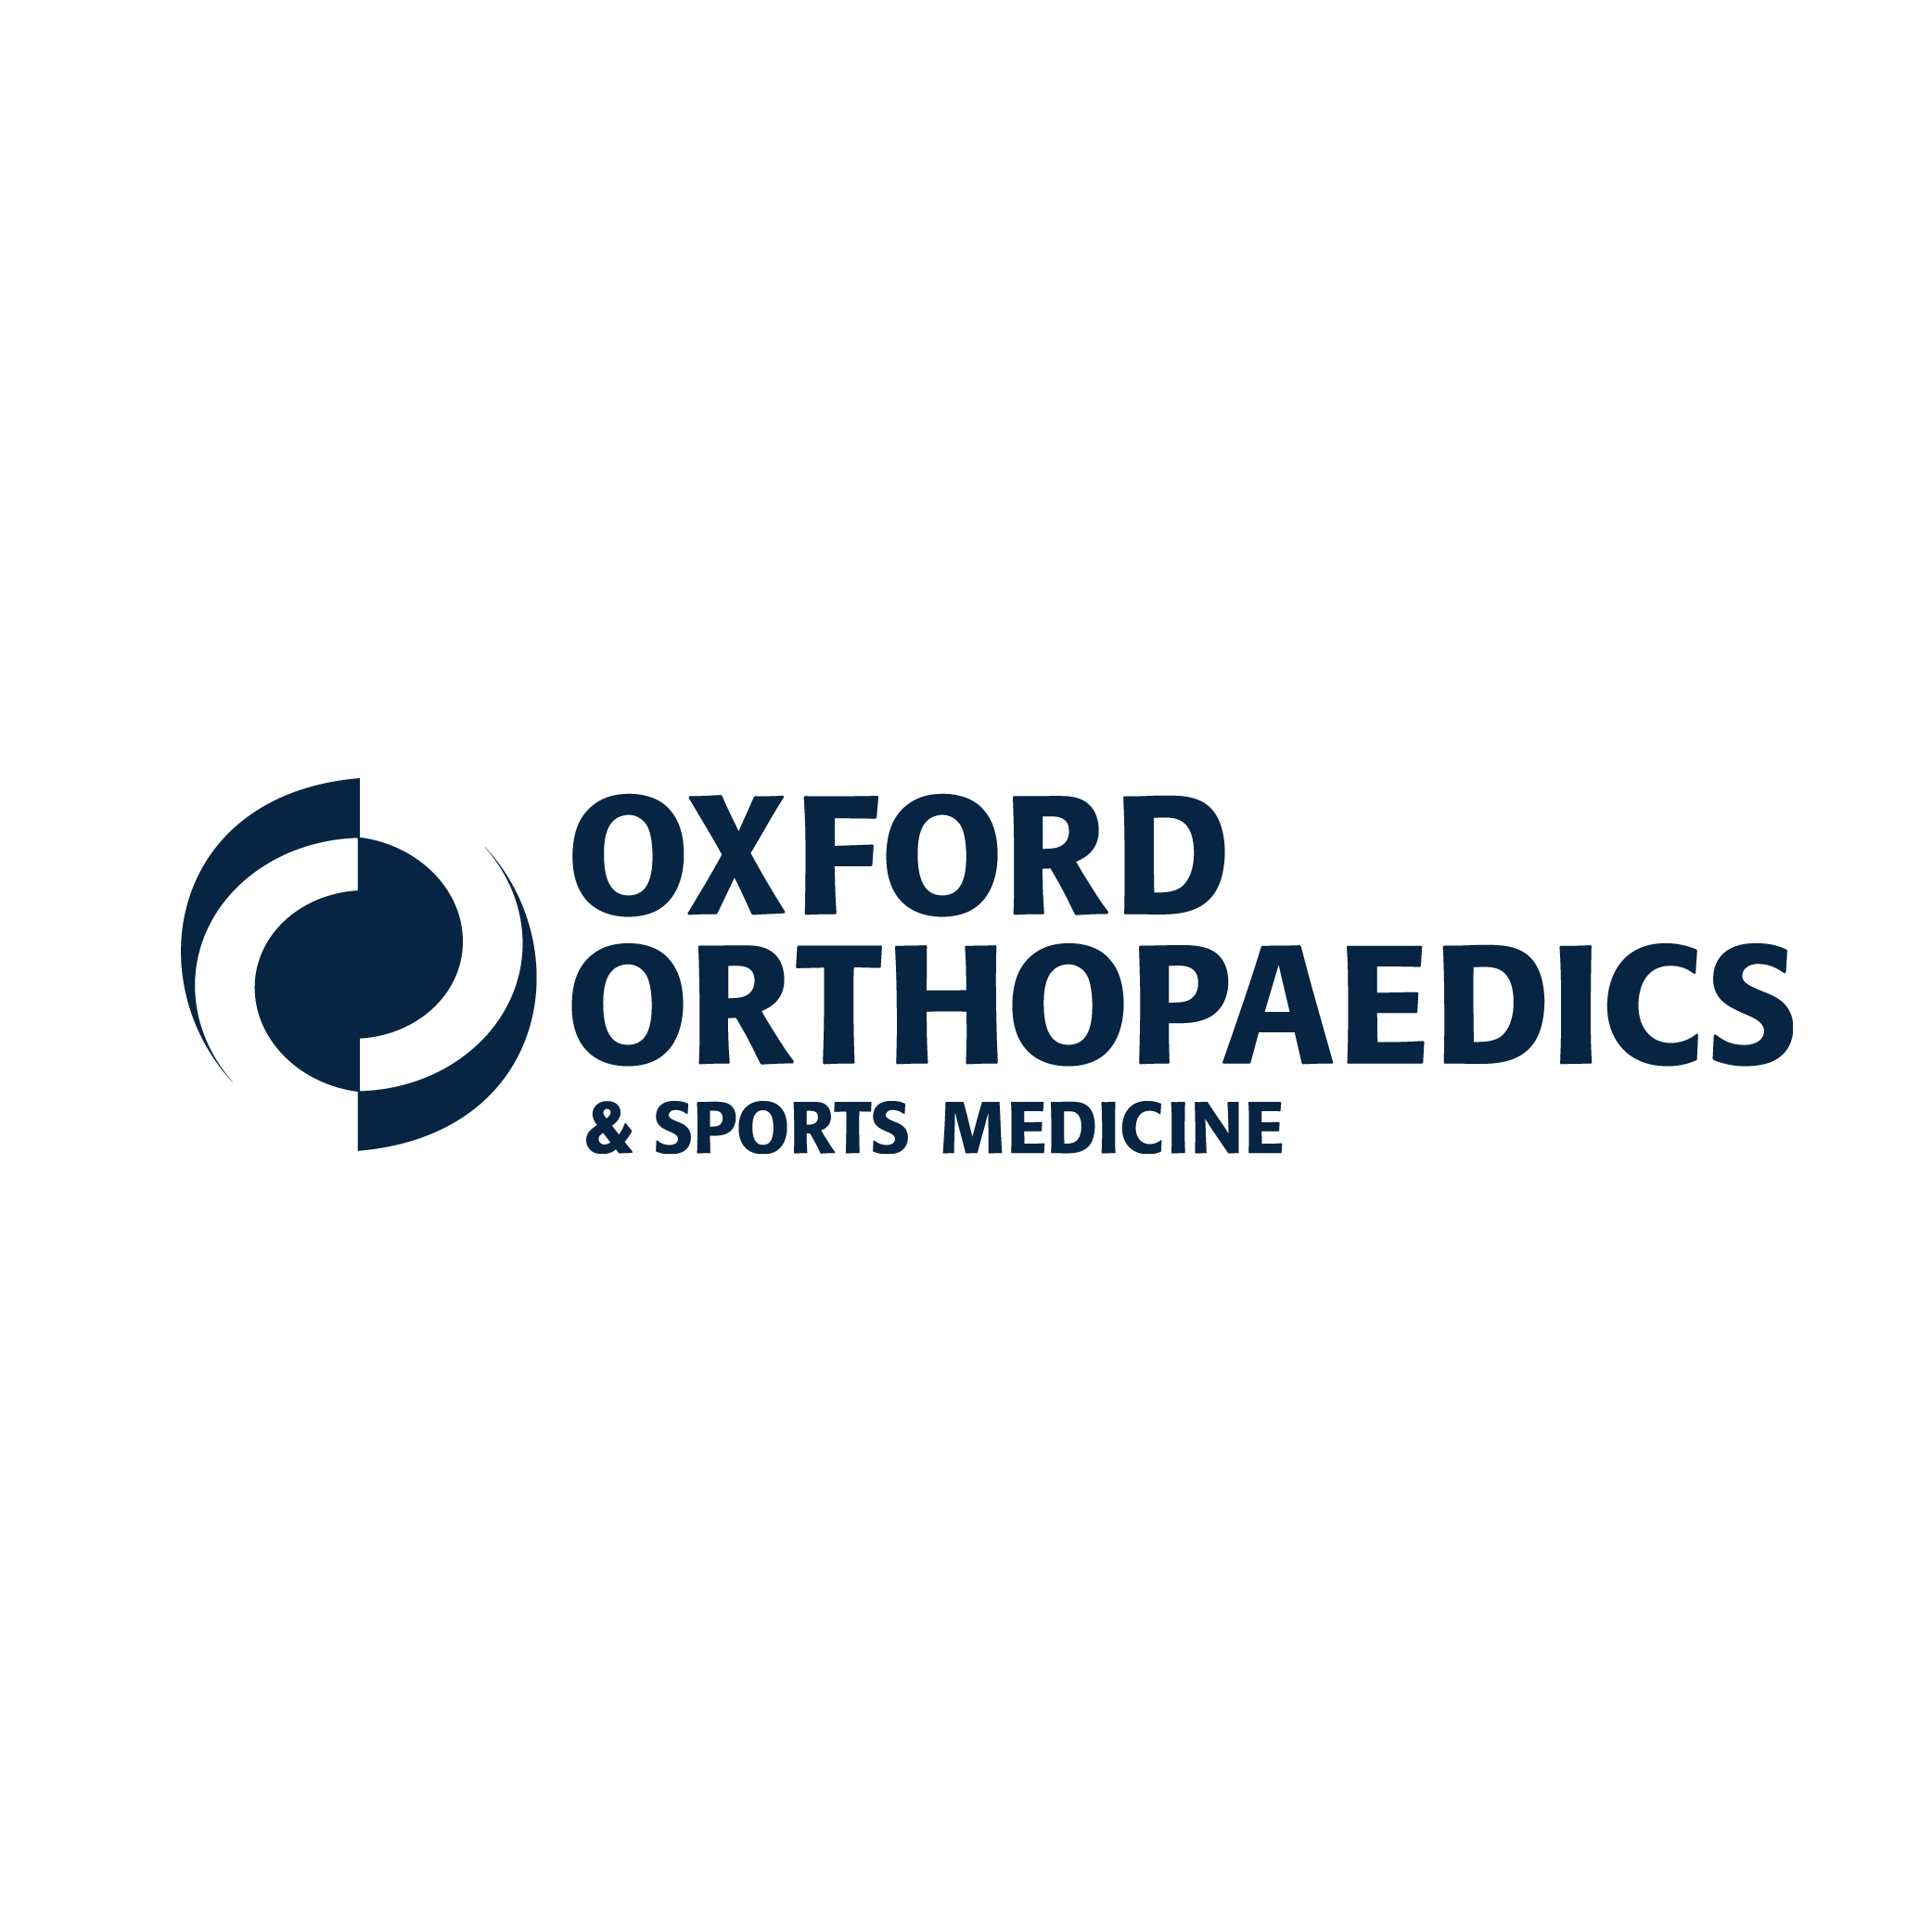 Oxford Orthopaedics